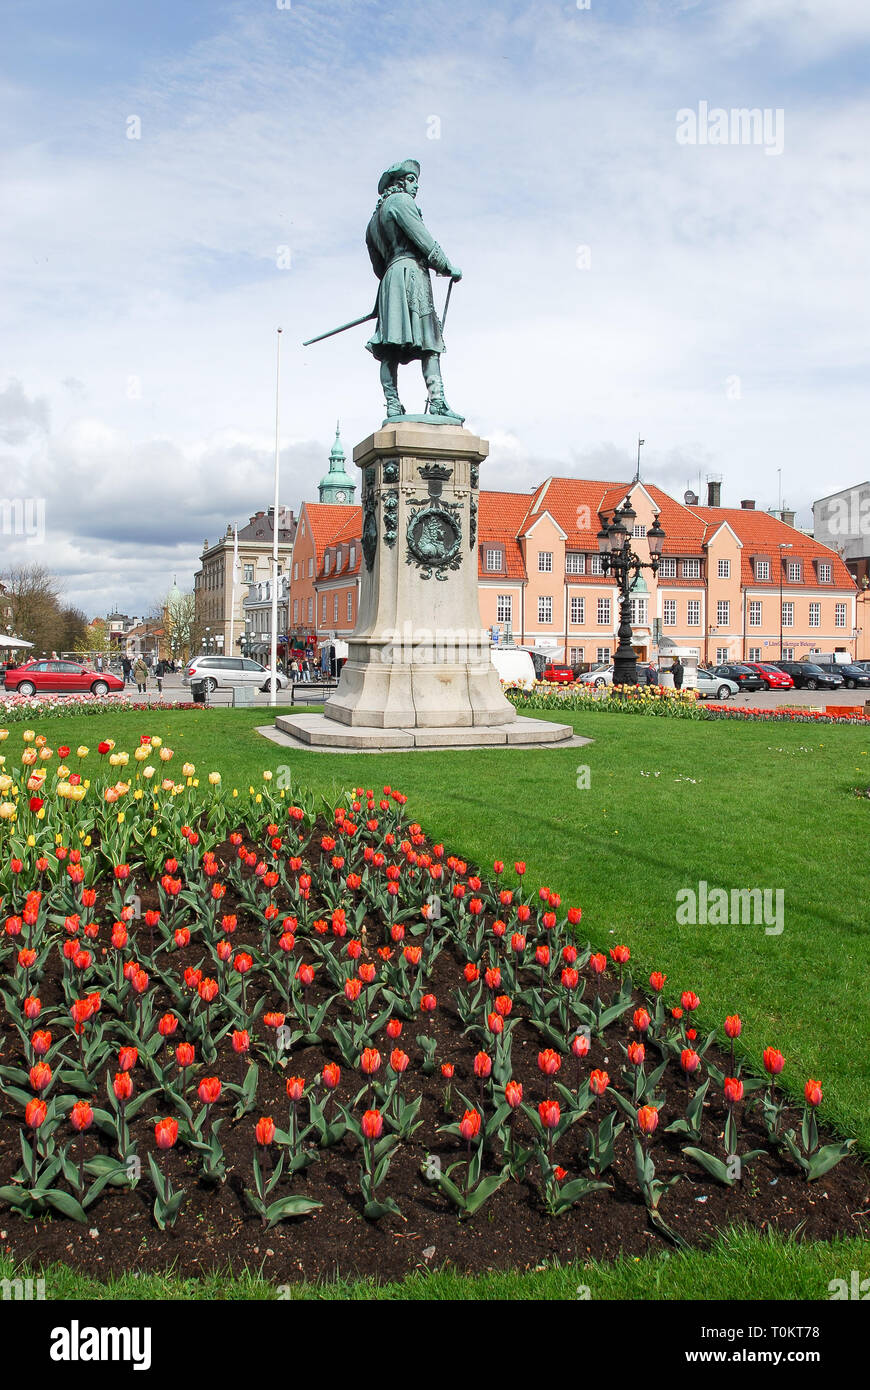 King Karl XI of Sweden statue (founder of city) on Stortorget on Trosso island listed World Heritage by UNESCO in Karlskrona, Blekinge, Sweden. May 2n - Stock Image